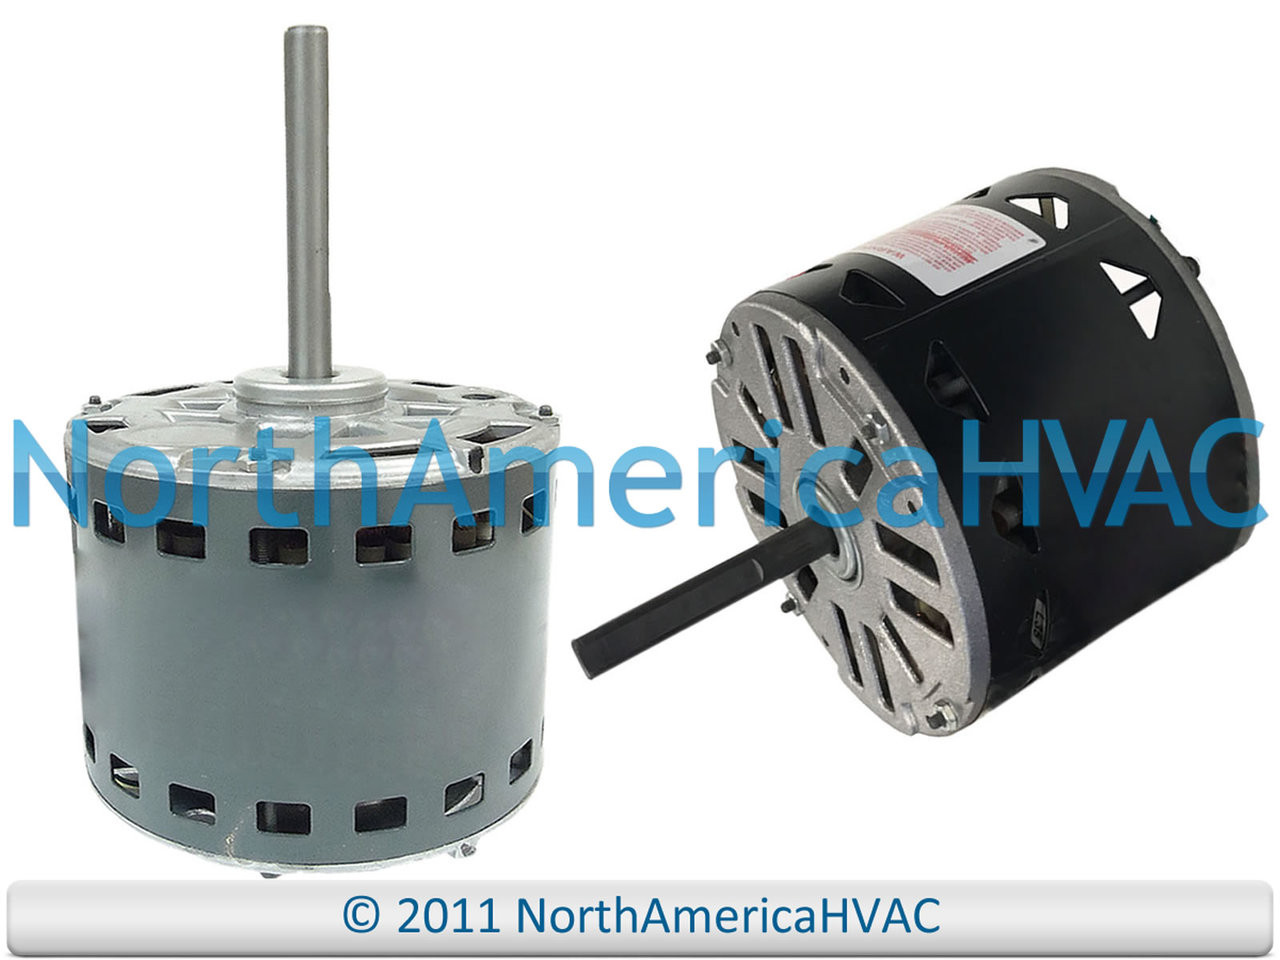 OEM Upgraded Replacement for York Furnace Blower Motor S1-02425982000